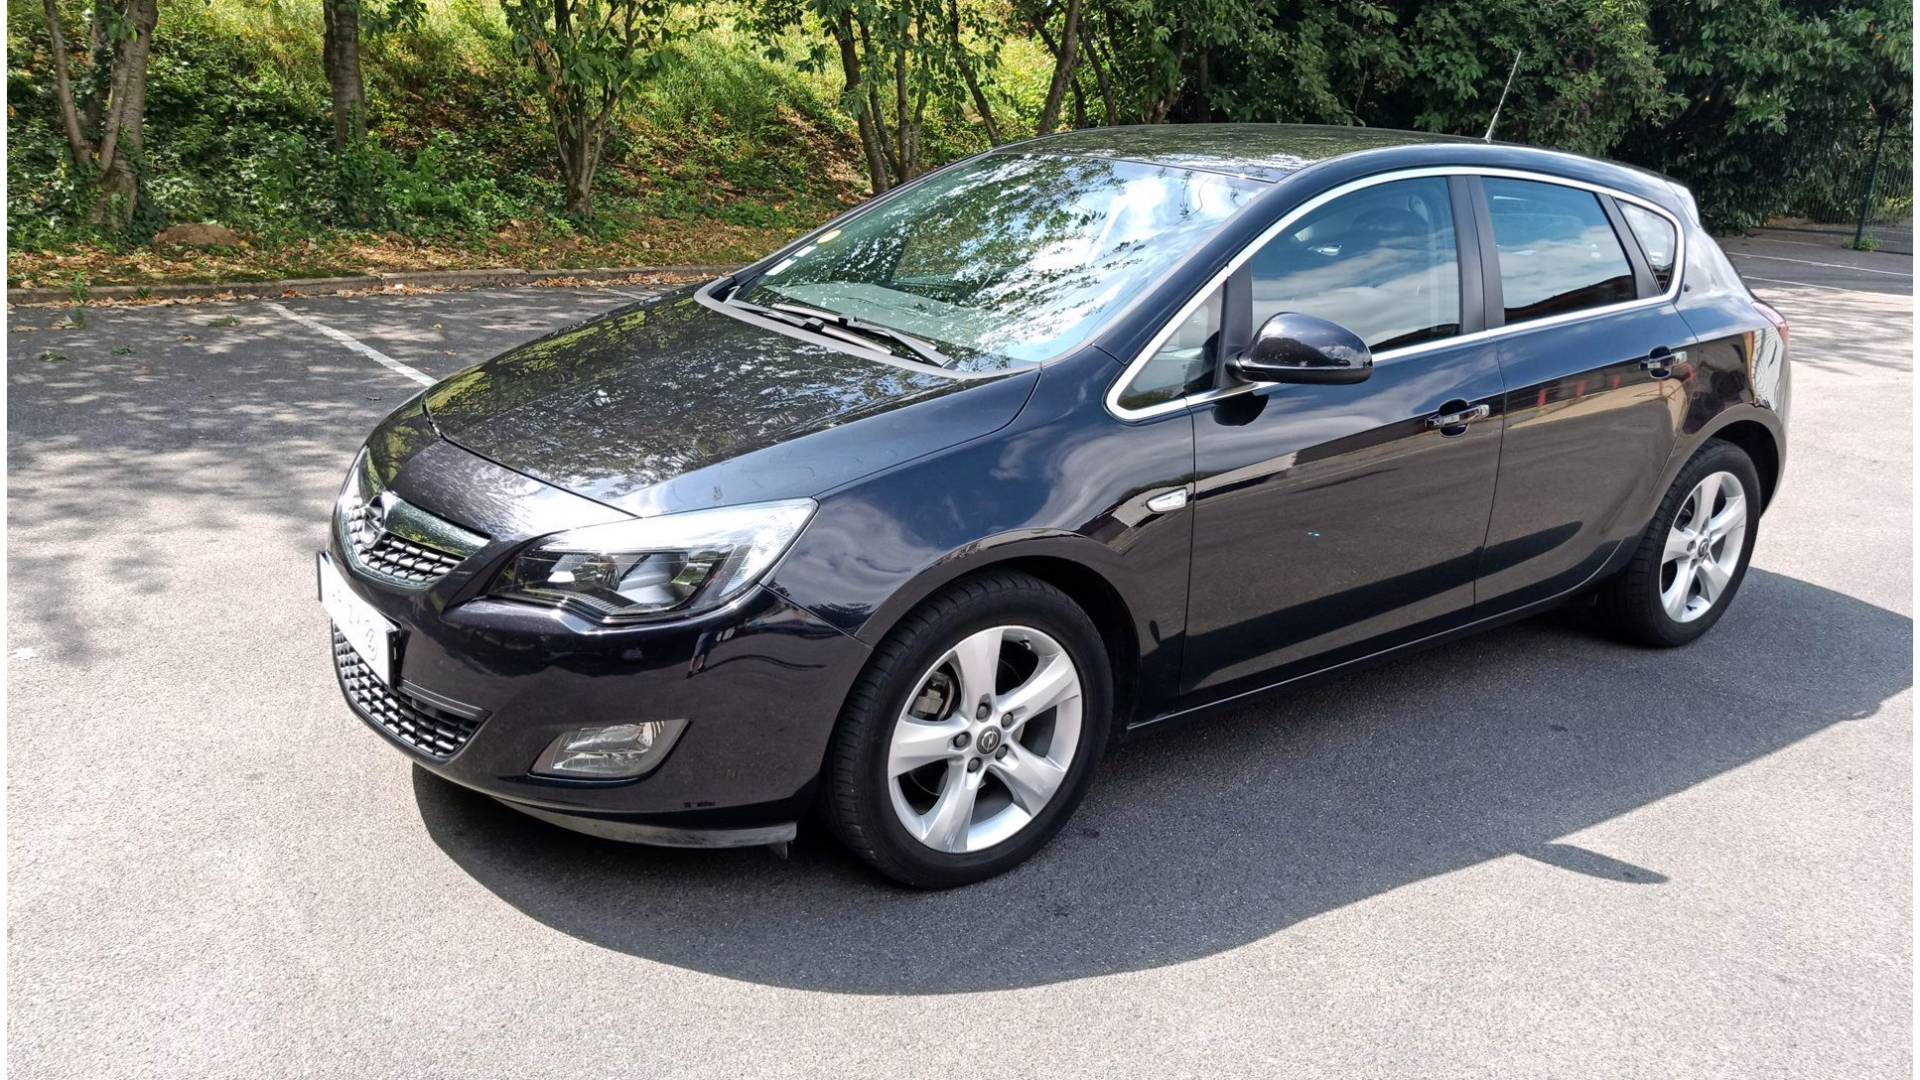 opel astra d 39 occasion 1 7 cdti 125 sport courcouronnes carizy. Black Bedroom Furniture Sets. Home Design Ideas